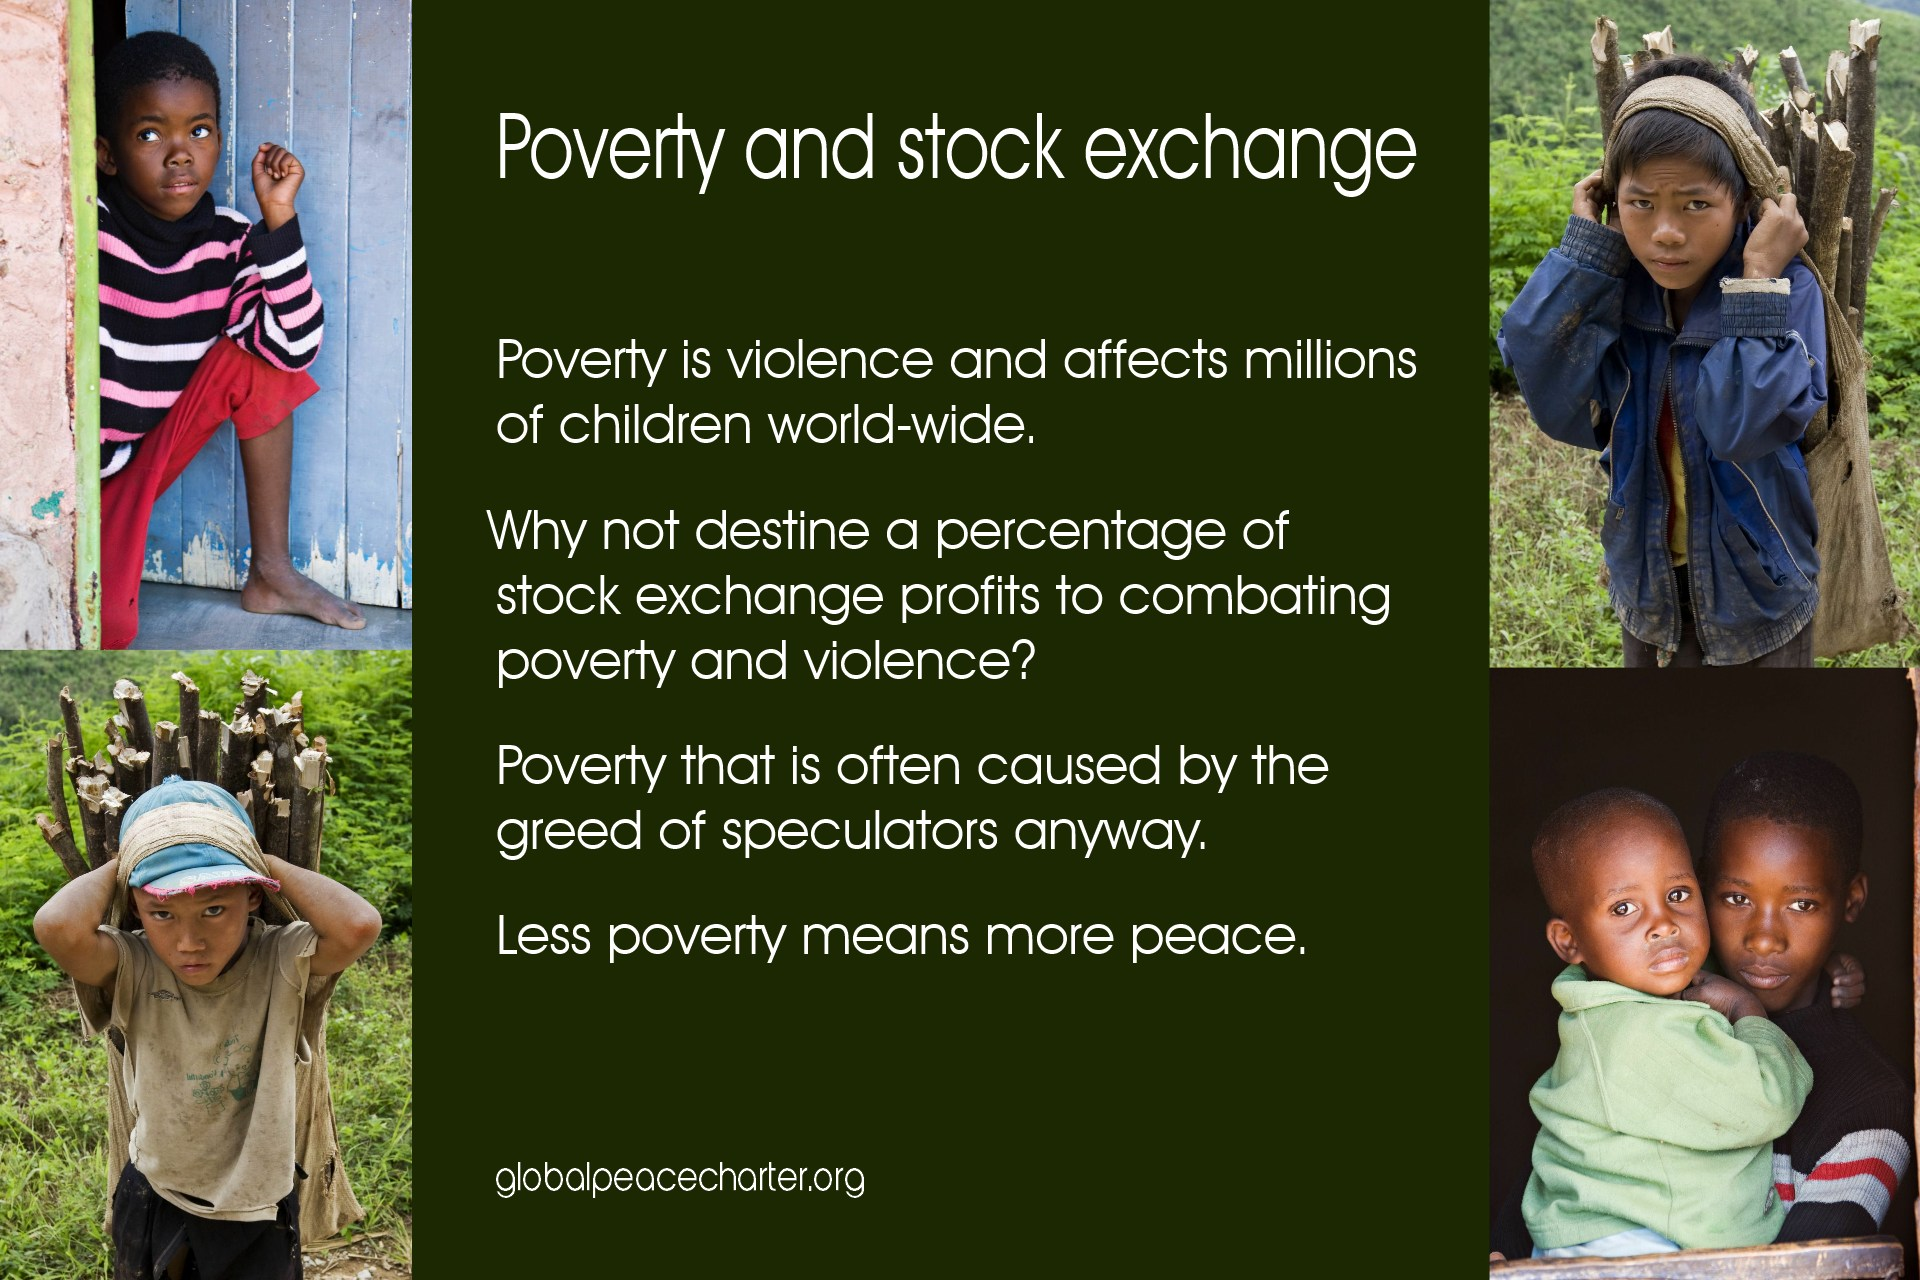 Poverty and stock exchange